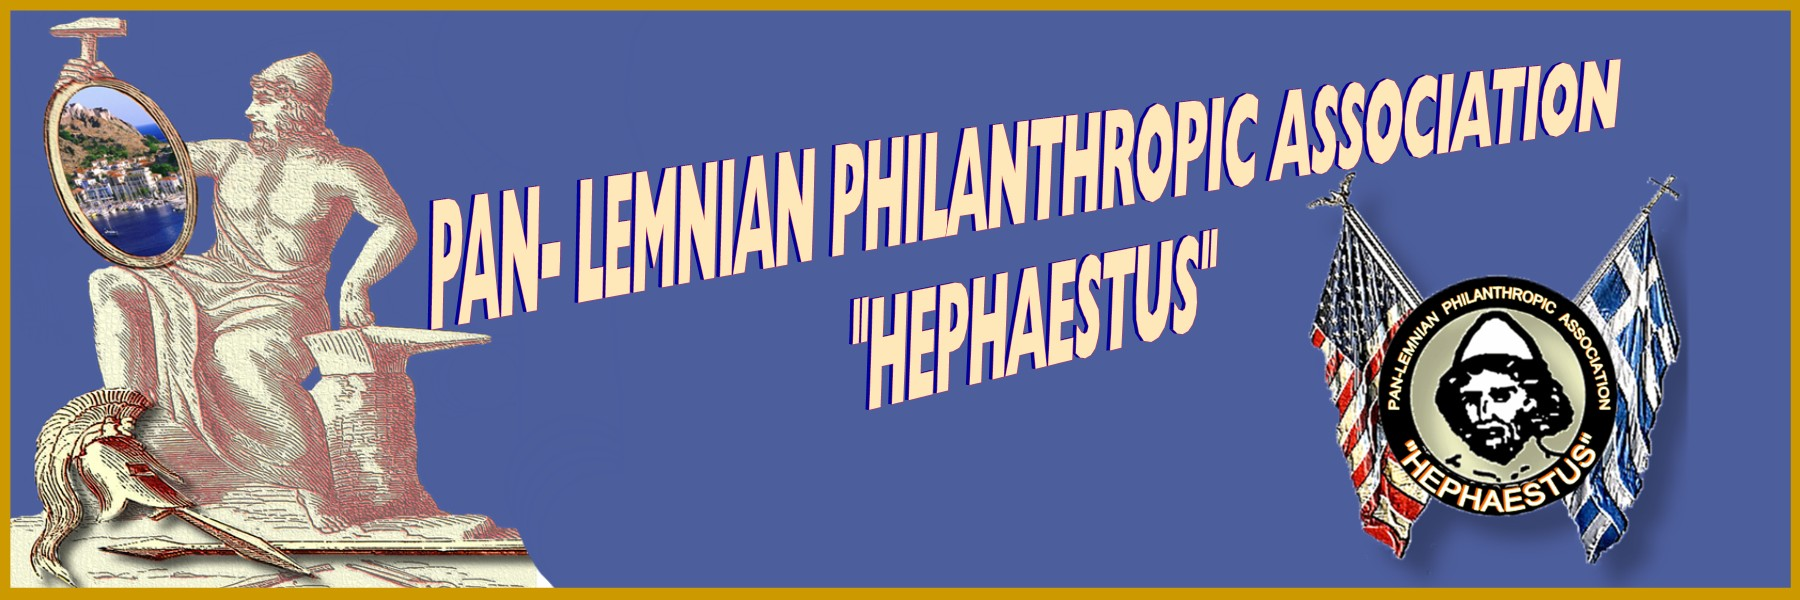 "Panlemnian Philanthropic Association ""HEPHAESTUS"" Logo"